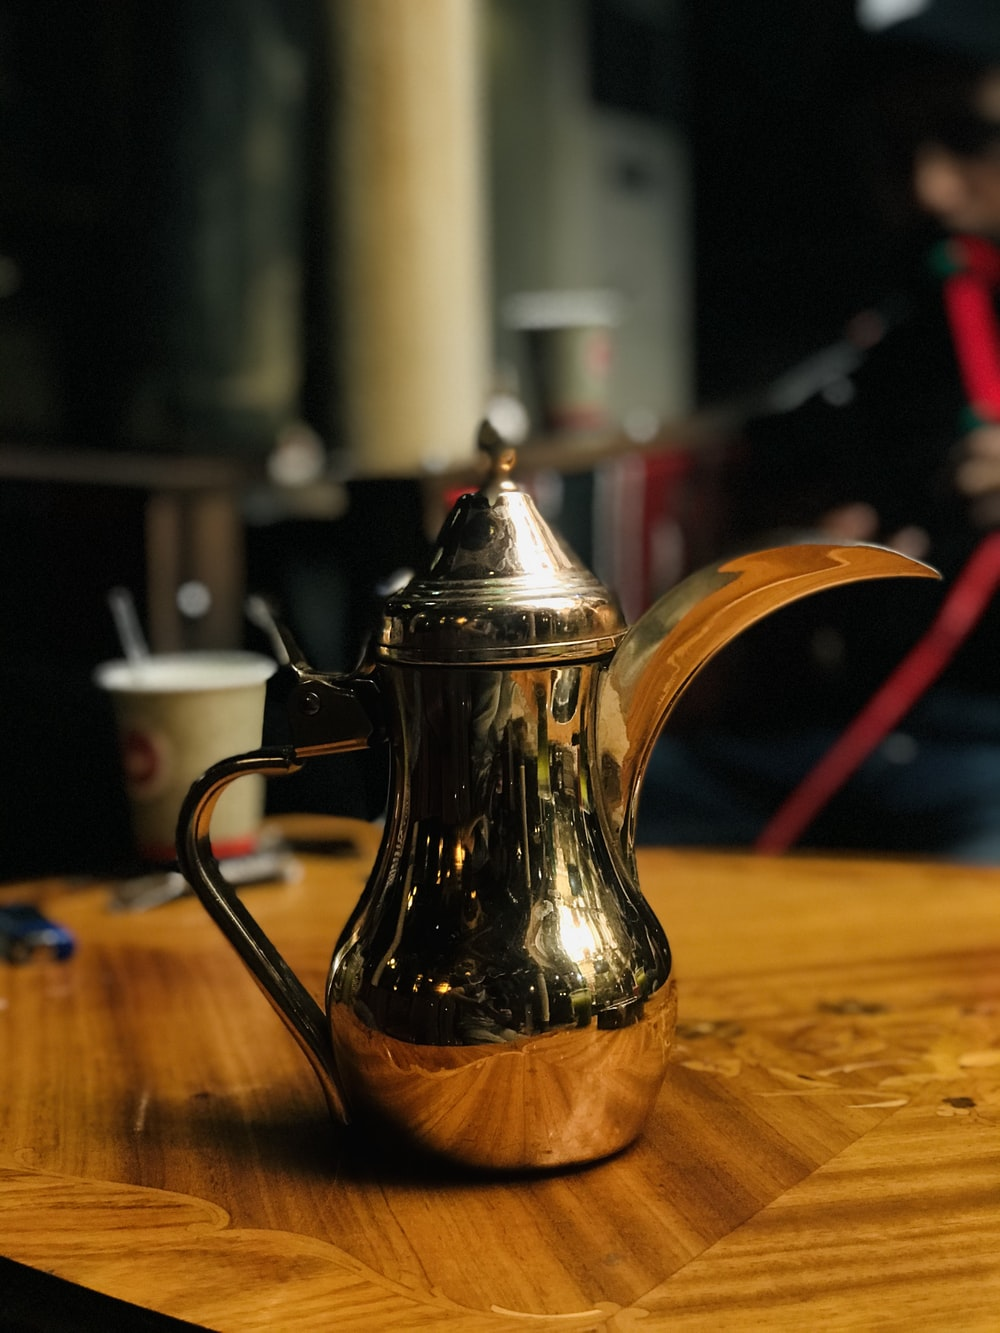 stainless steel teapot on brown wooden table